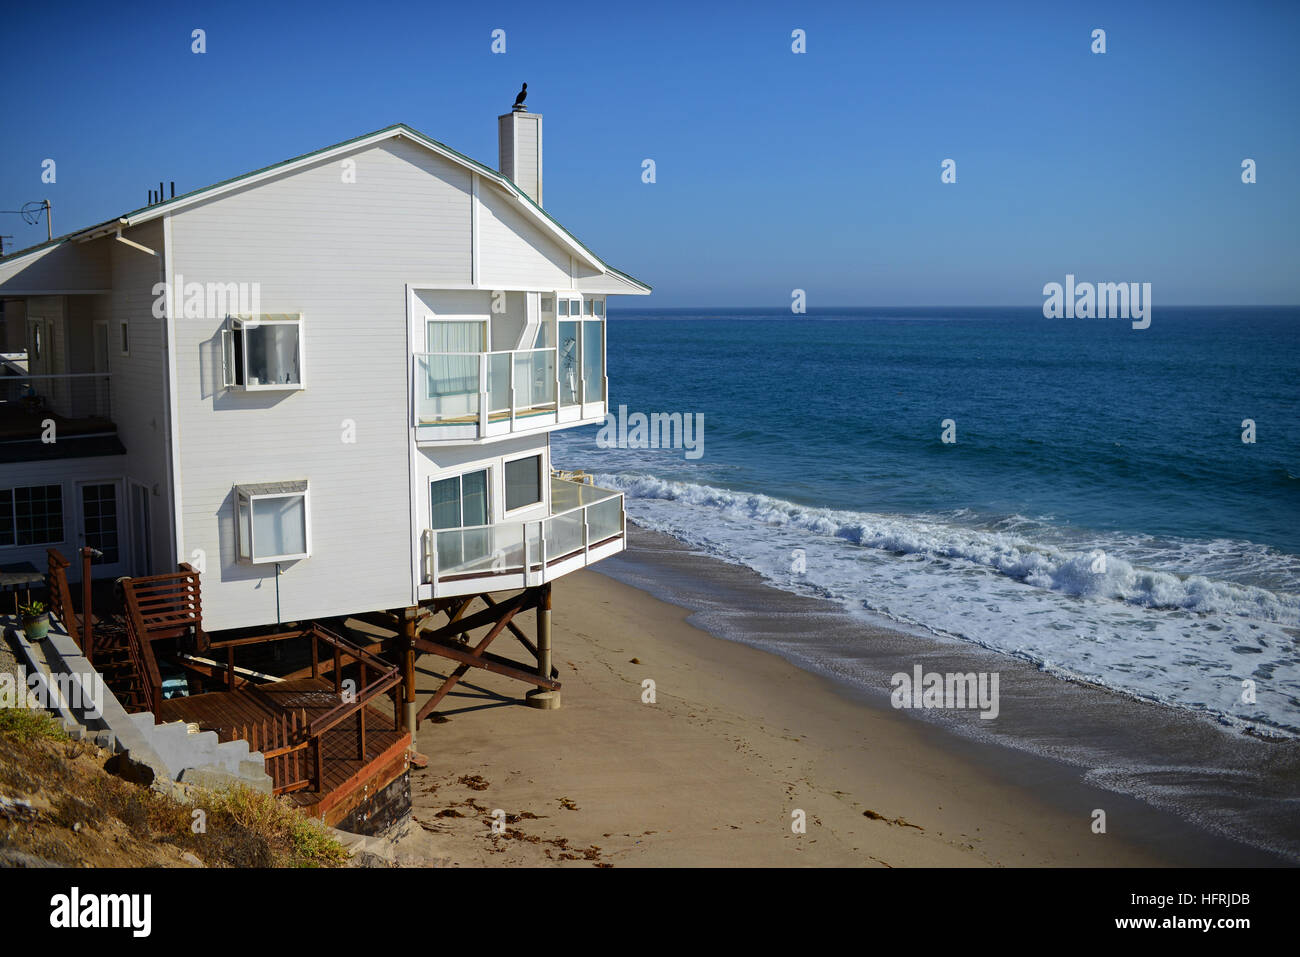 Beach front homes along pacific coast highway in malibu california stock photo royalty free - Beachfront houses in california ...